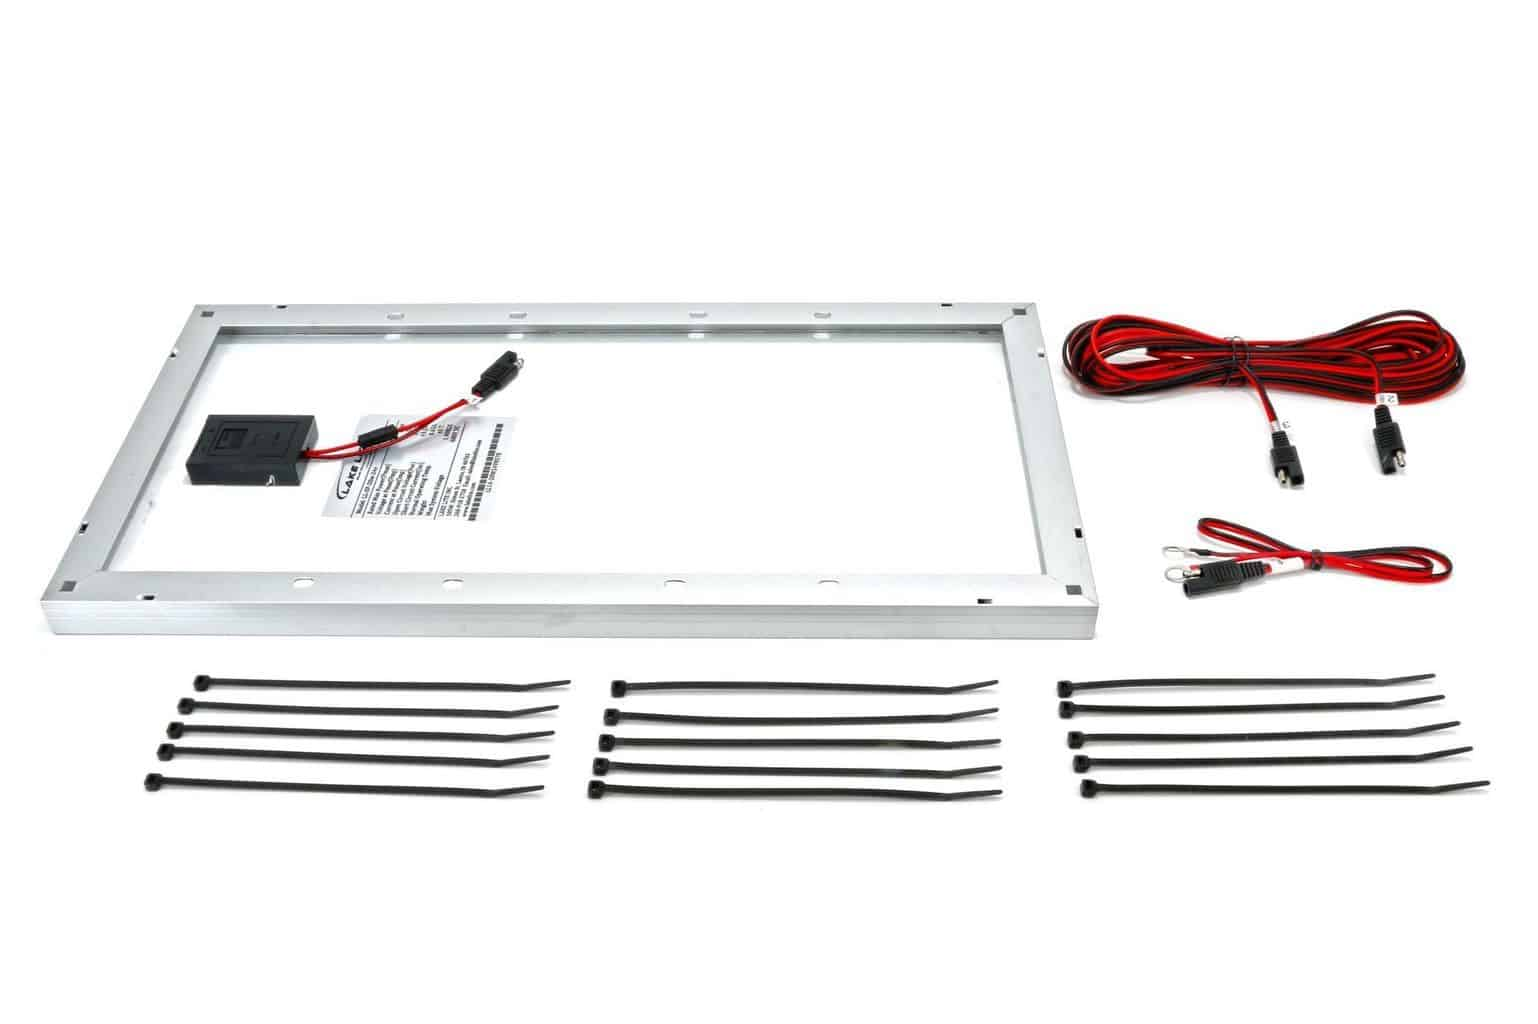 20 Watt 24 Volt Boat Lift Solar Charging Kit Midwest